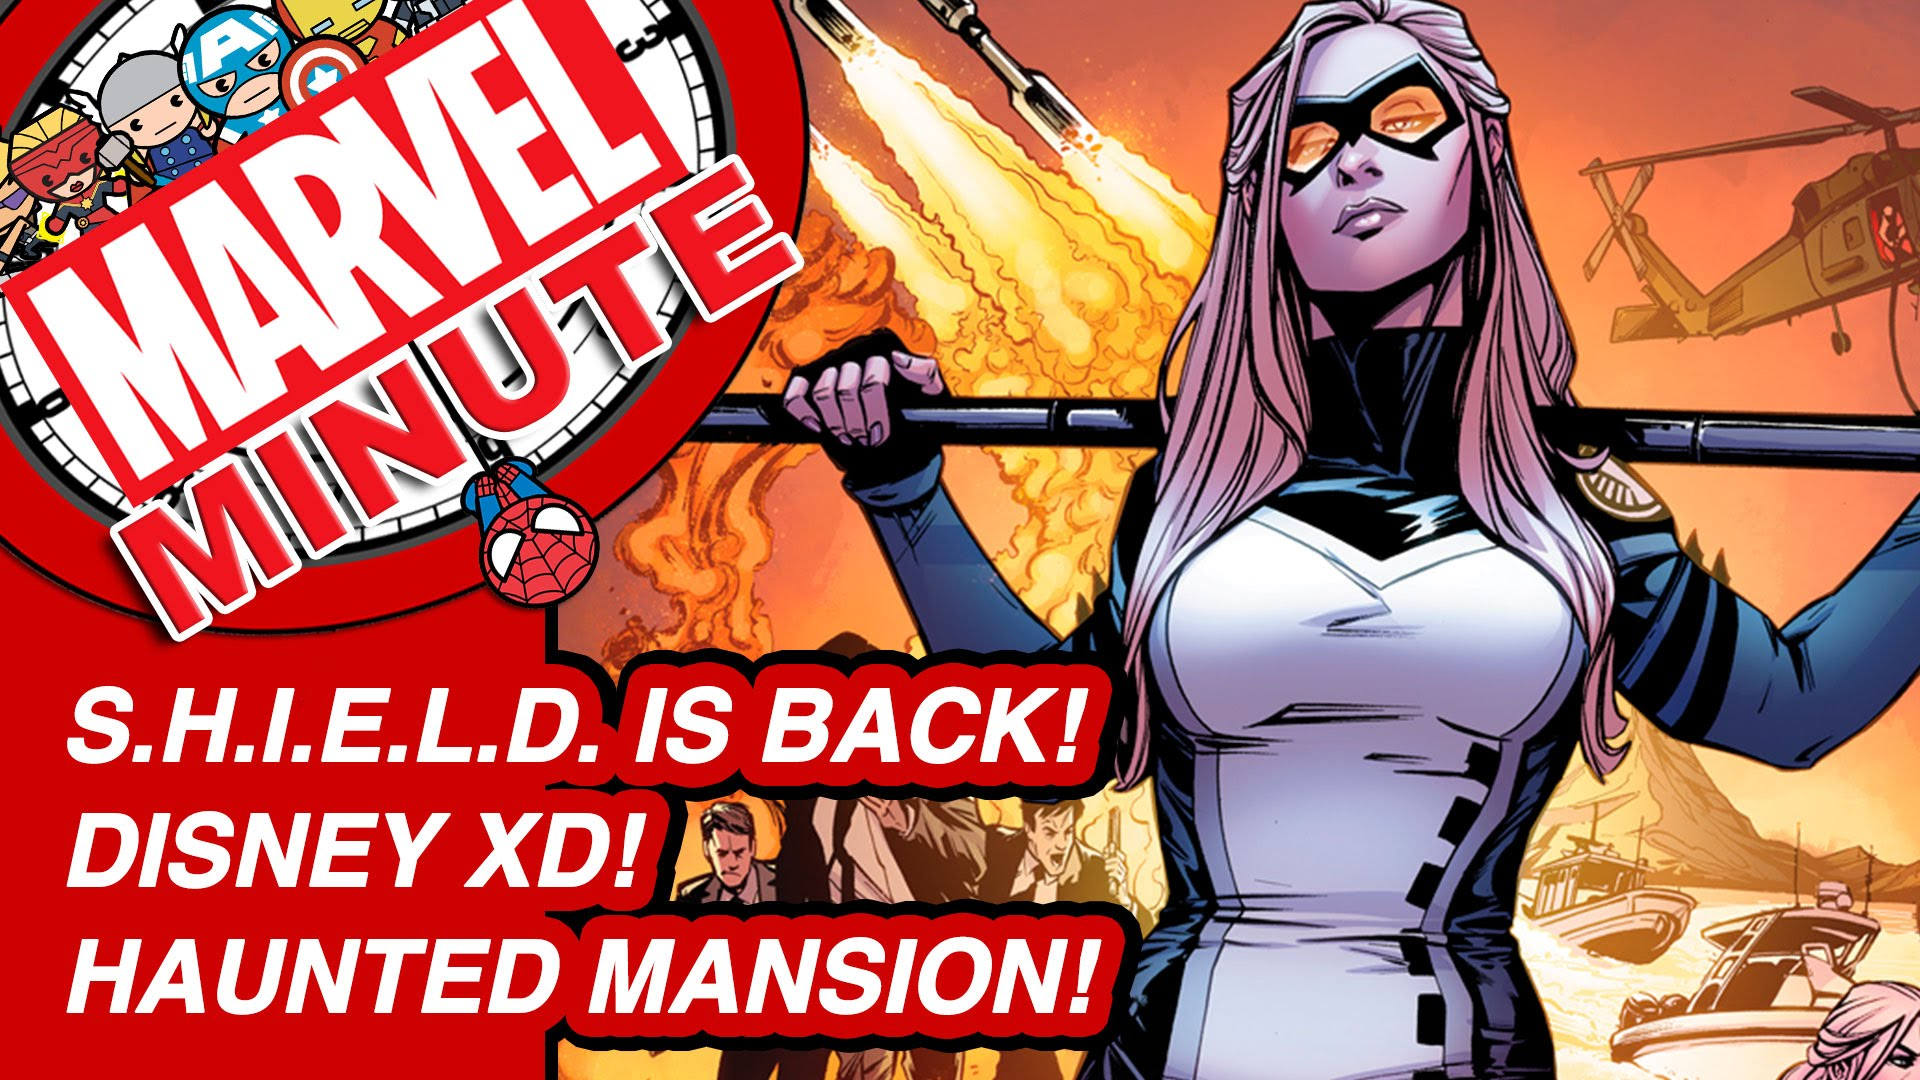 S.H.I.E.L.D. is back! Disney XD! Haunted Mansion! - Marvel Minute 2016